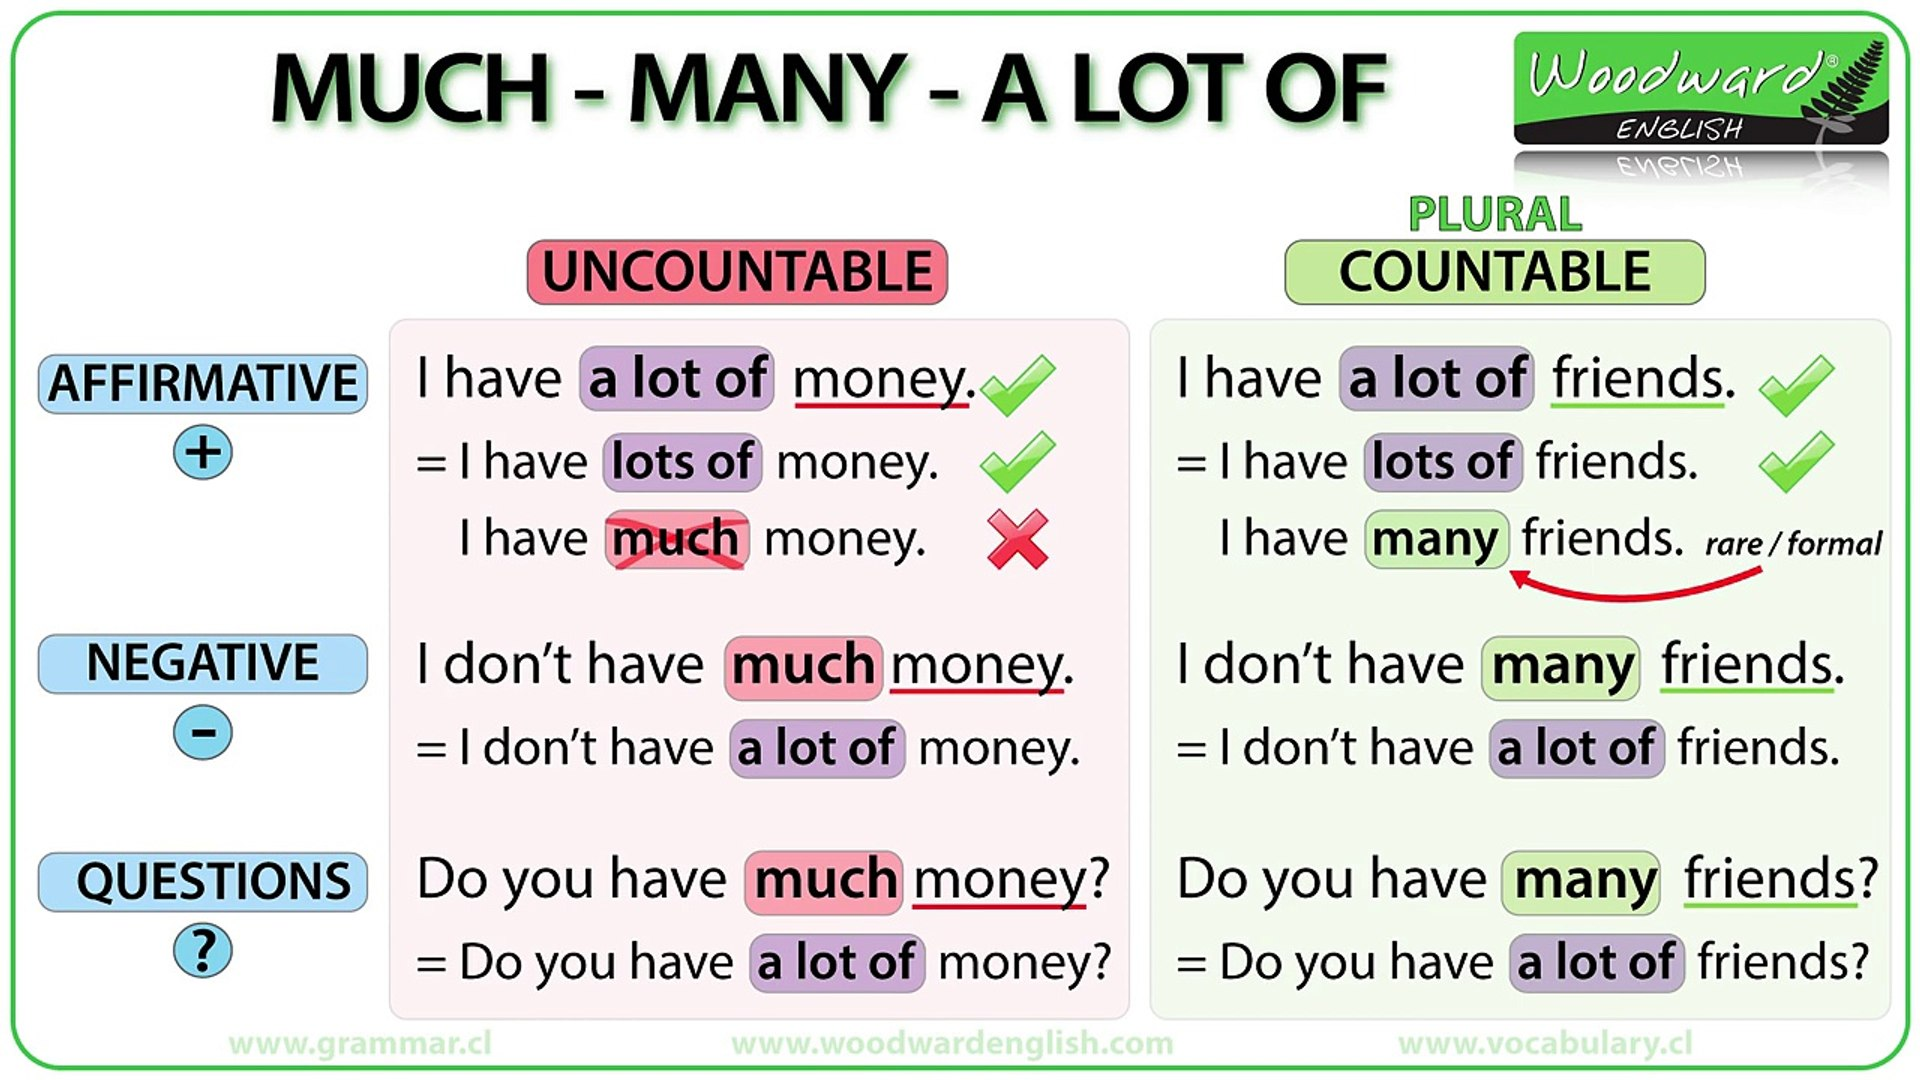 Much Vs Many Vs A Lot Of English Grammar Lesson видео Dailymotion